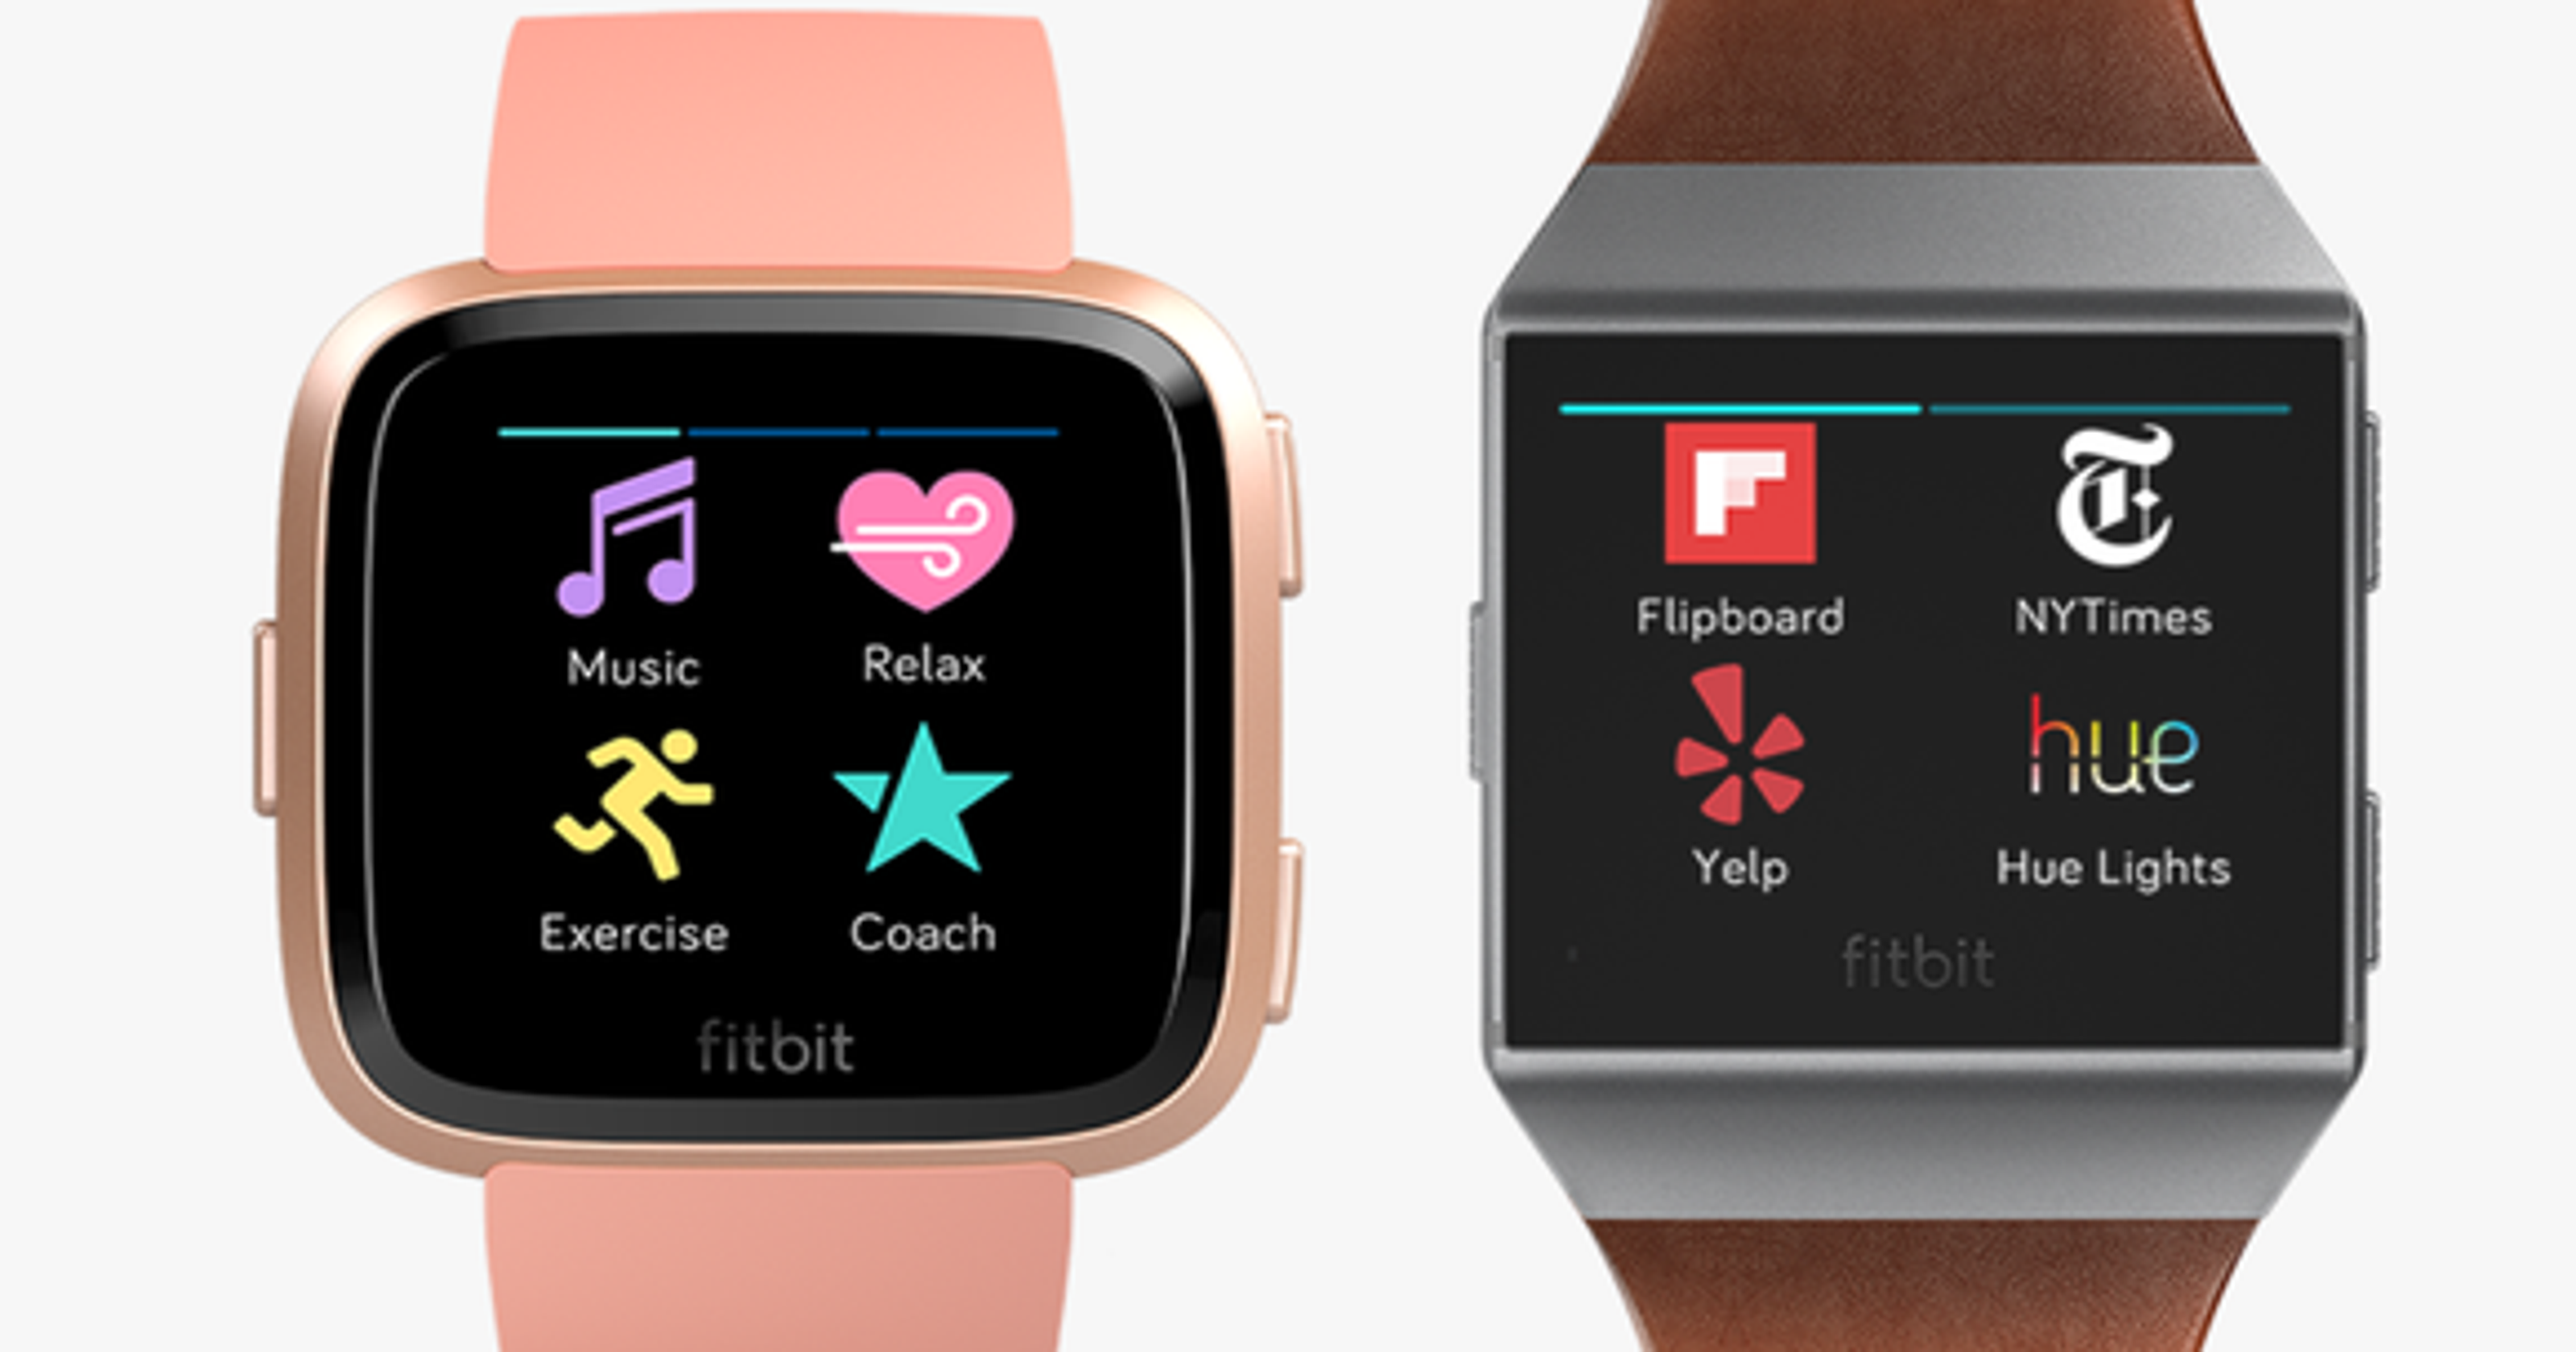 Fitbit now tracks women's periods, so they can monitor menstrual cycle